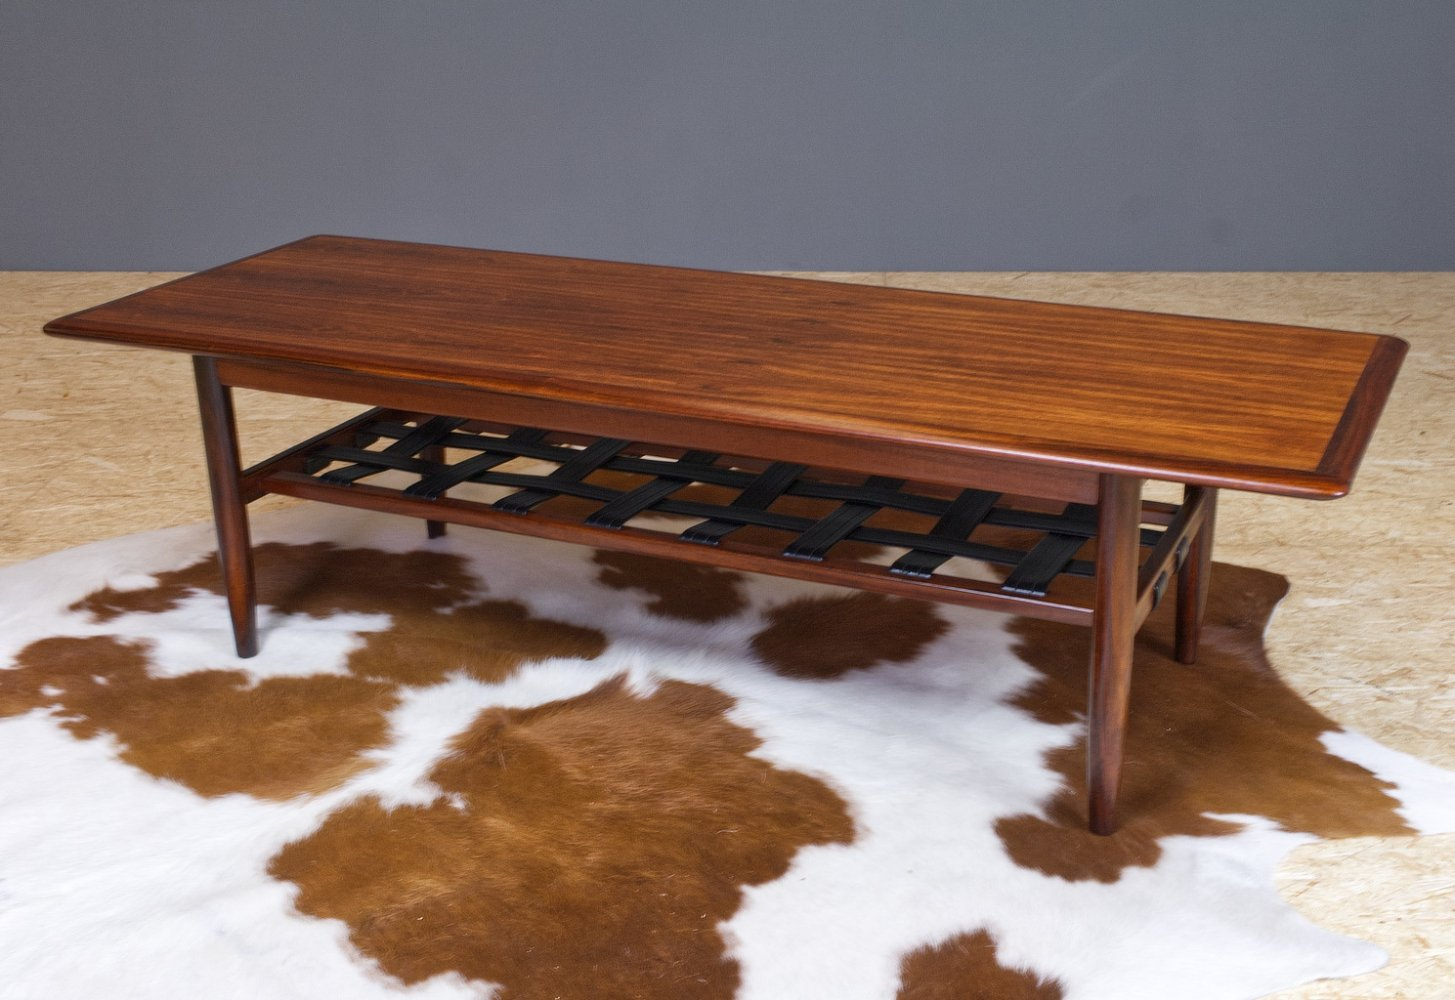 Rosewood coffee table by Eric Merthen, 1960s